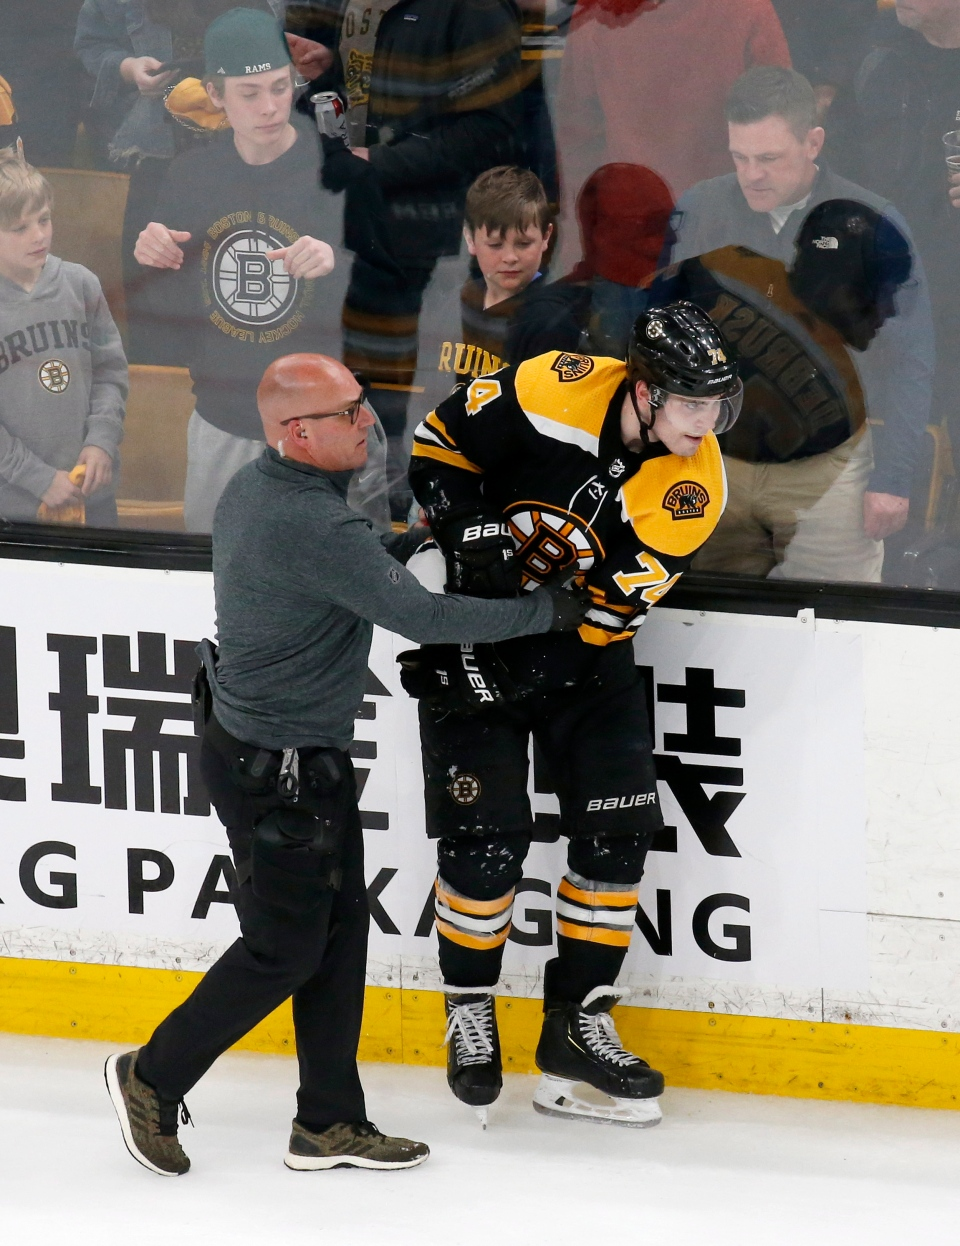 Boston Bruins left wing Jake DeBrusk (74) is helped off the ice by medical personnel after being checked in the head by Toronto Maple Leafs center Nazem Kadri during the third period of Game 2 of an NHL hockey first-round playoff series, Saturday, April 13, 2019, in Boston. (AP Photo/Mary Schwalm)